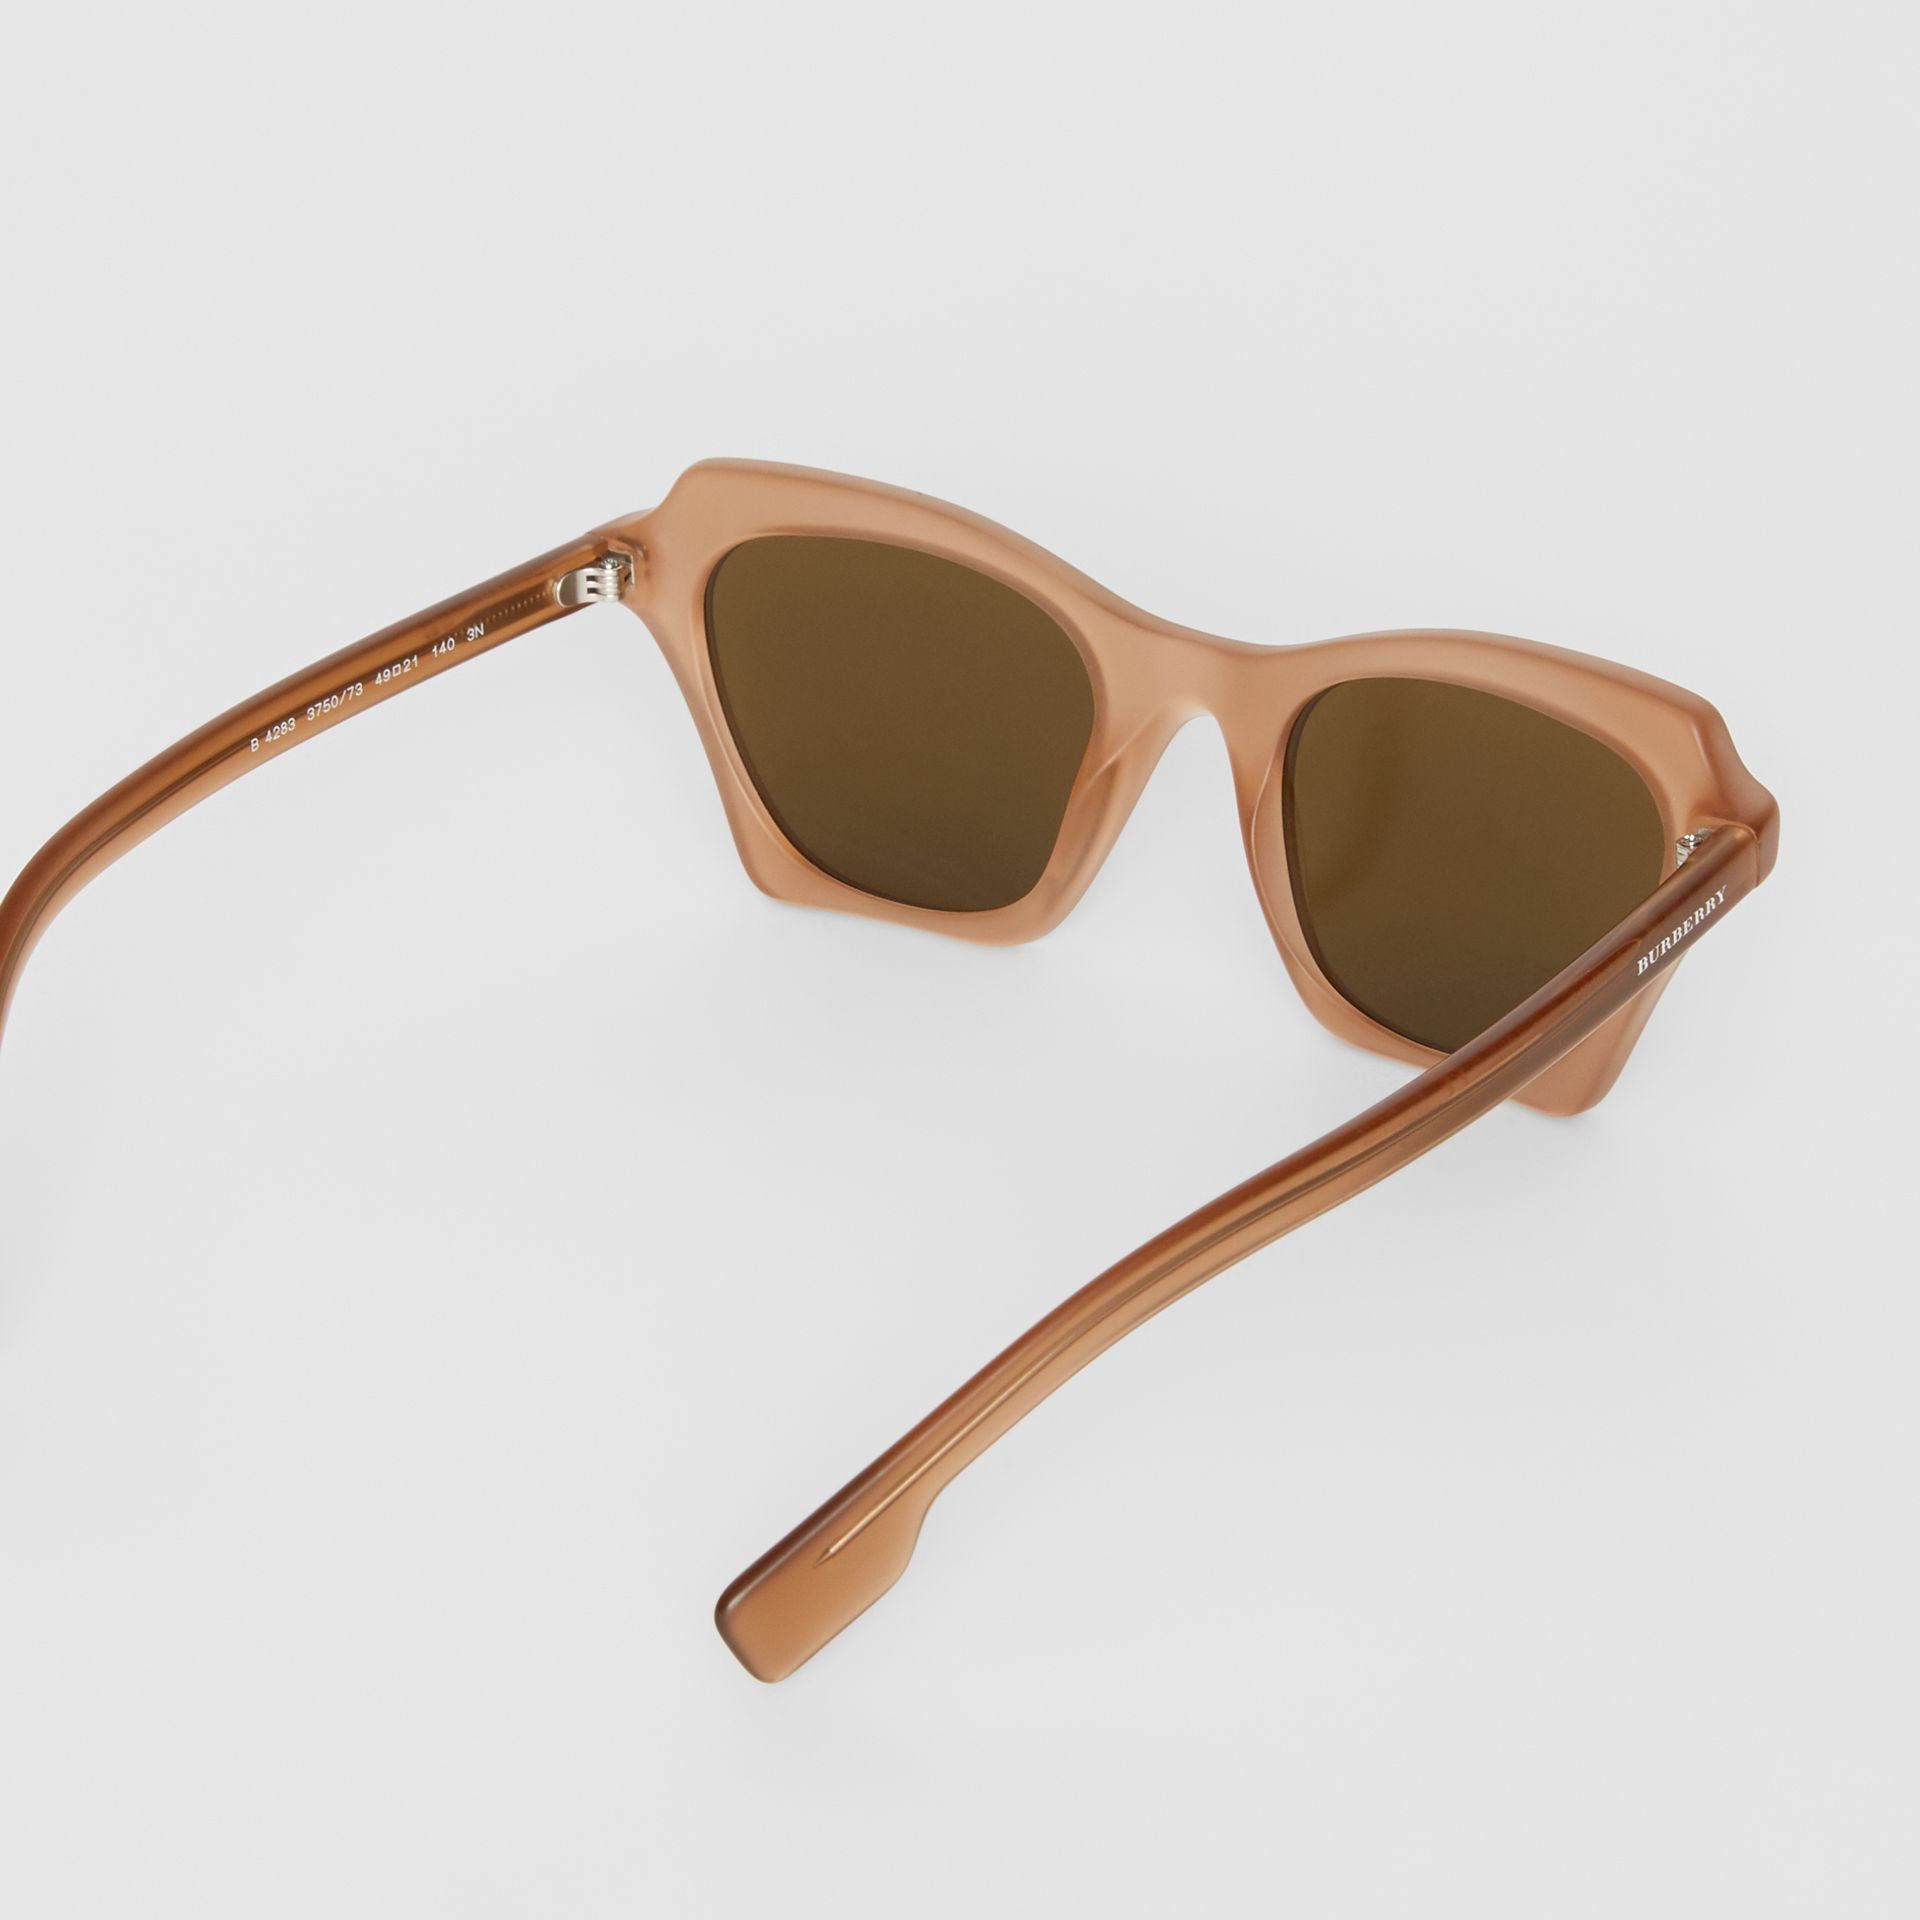 Butterfly Frame Sunglasses in Brown - Women | Burberry Canada - gallery image 4